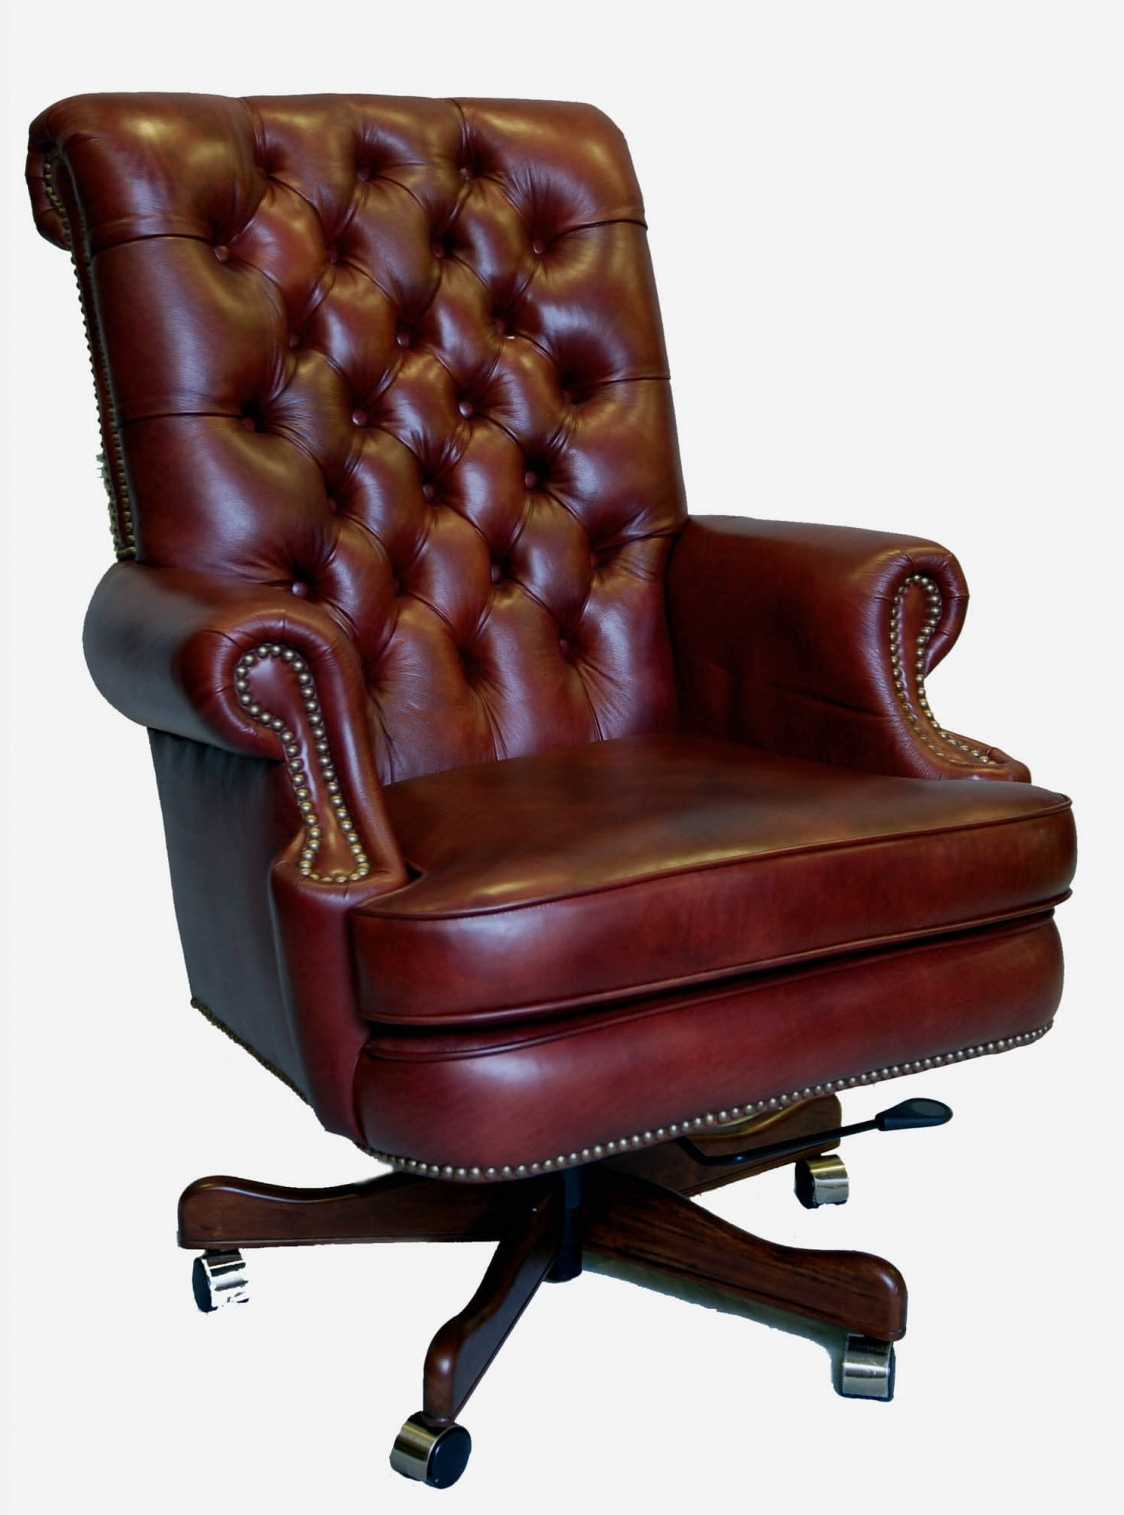 Leather Executive Office Chairs For Most Popular Brown Leather Executive Office Chair – Space Saving Desk Ideas (View 5 of 20)